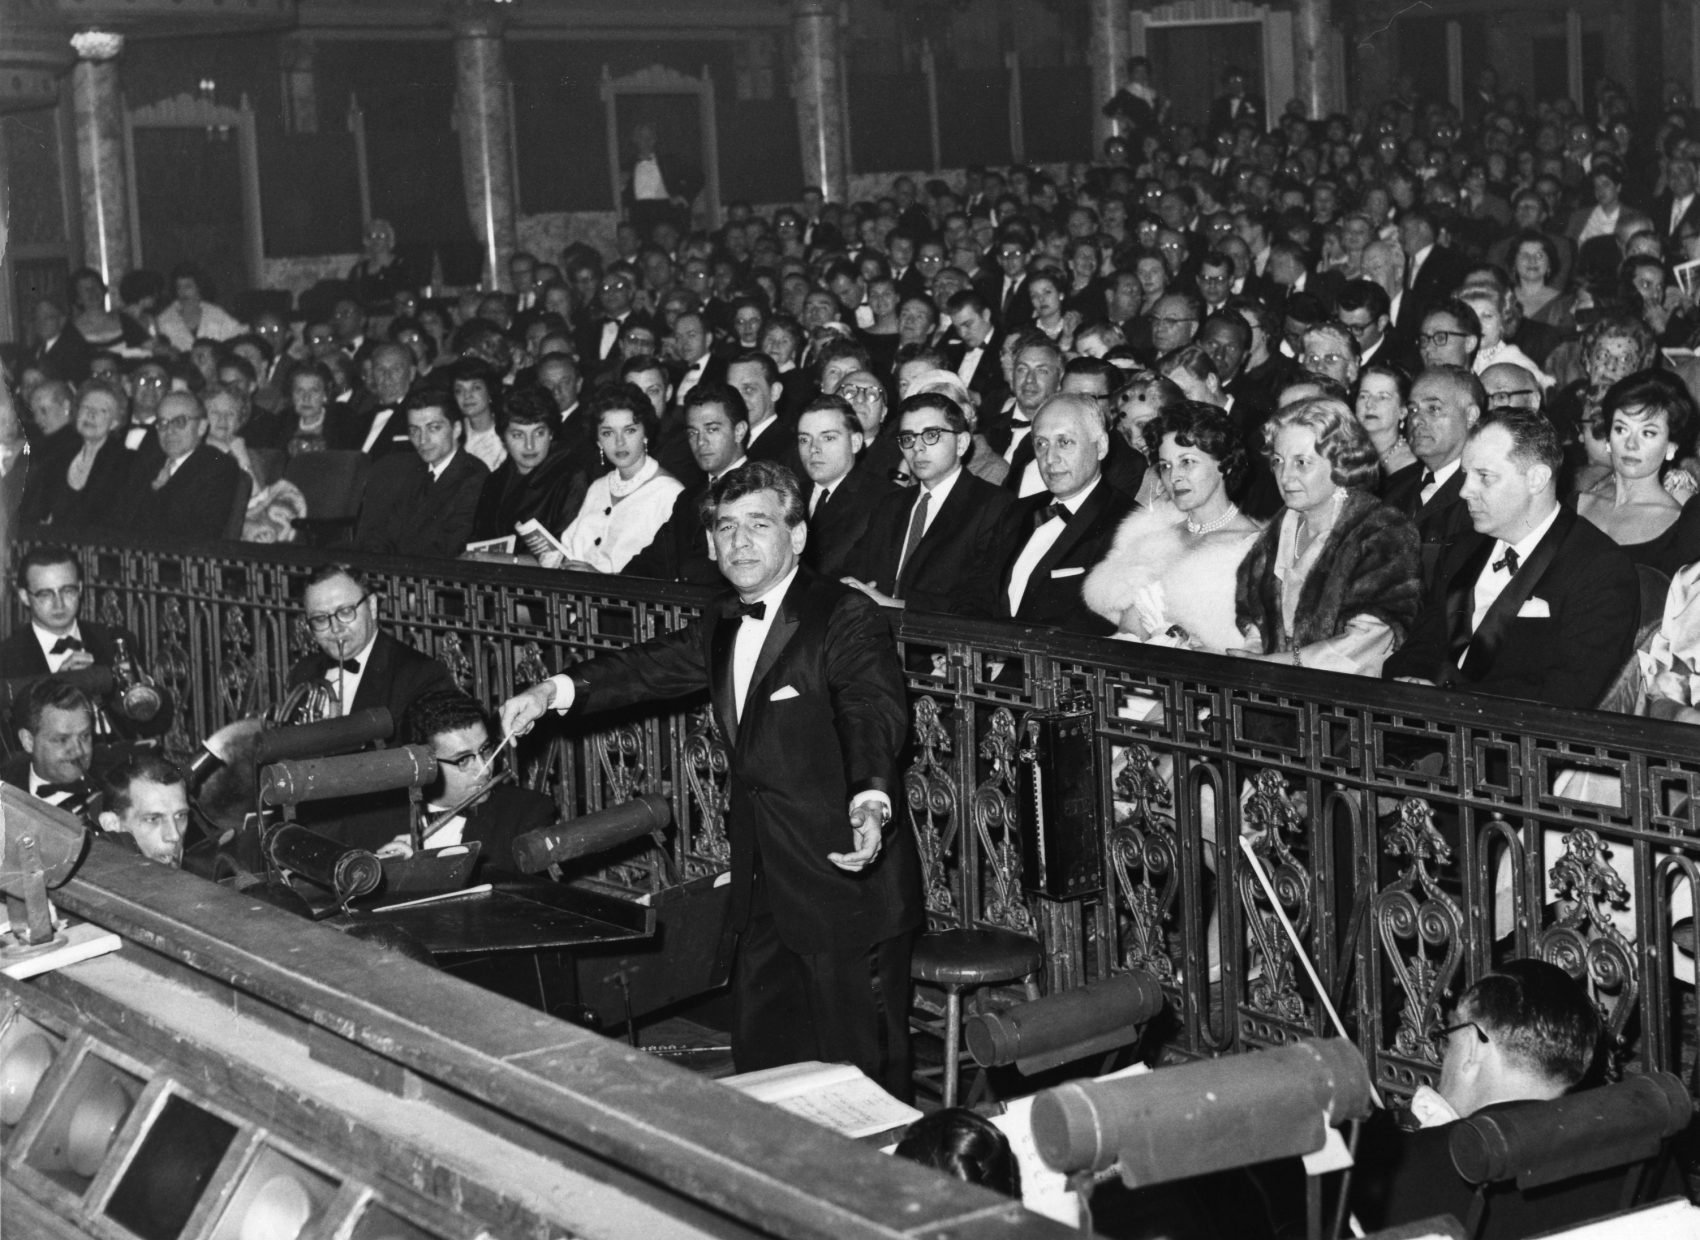 """Leonard Bernstein, who composed the music for the musical """"West Side Story,"""" conducts the orchestra in the overture on April 27, 1960, during the show's reopening in New York. (AP)"""